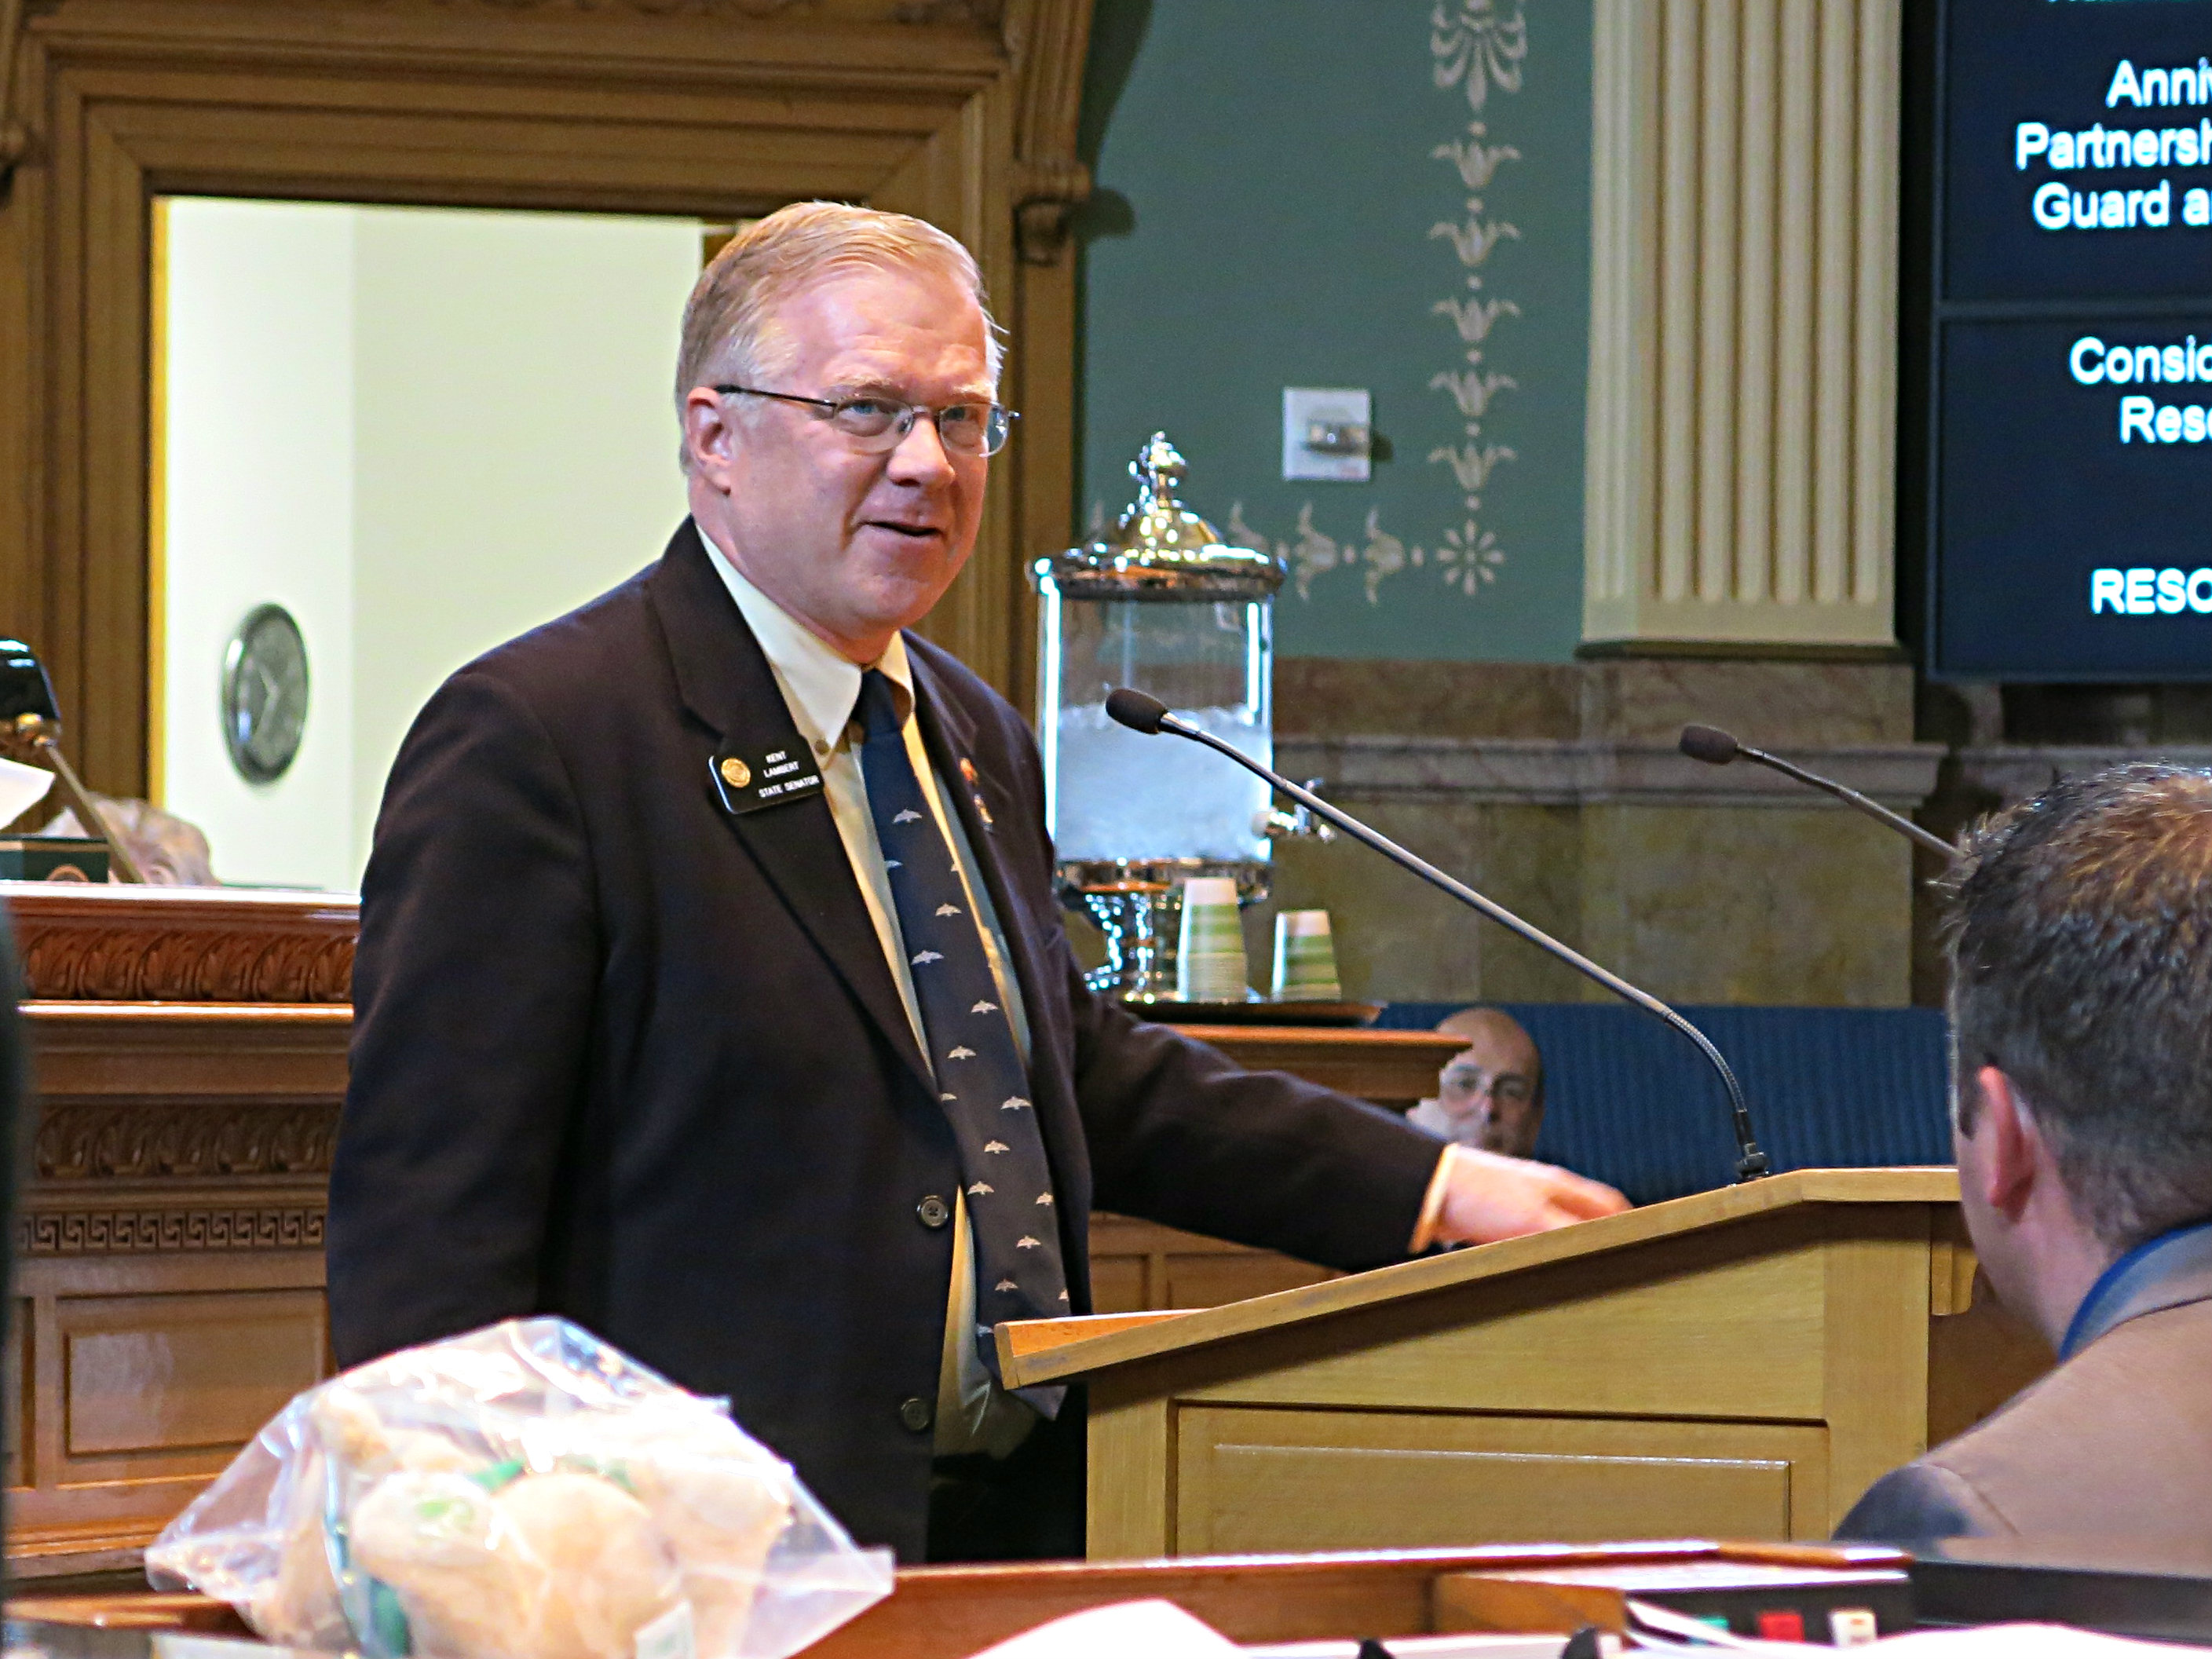 Photo: State Sen. Kent Lambert, R-Colorado Springs